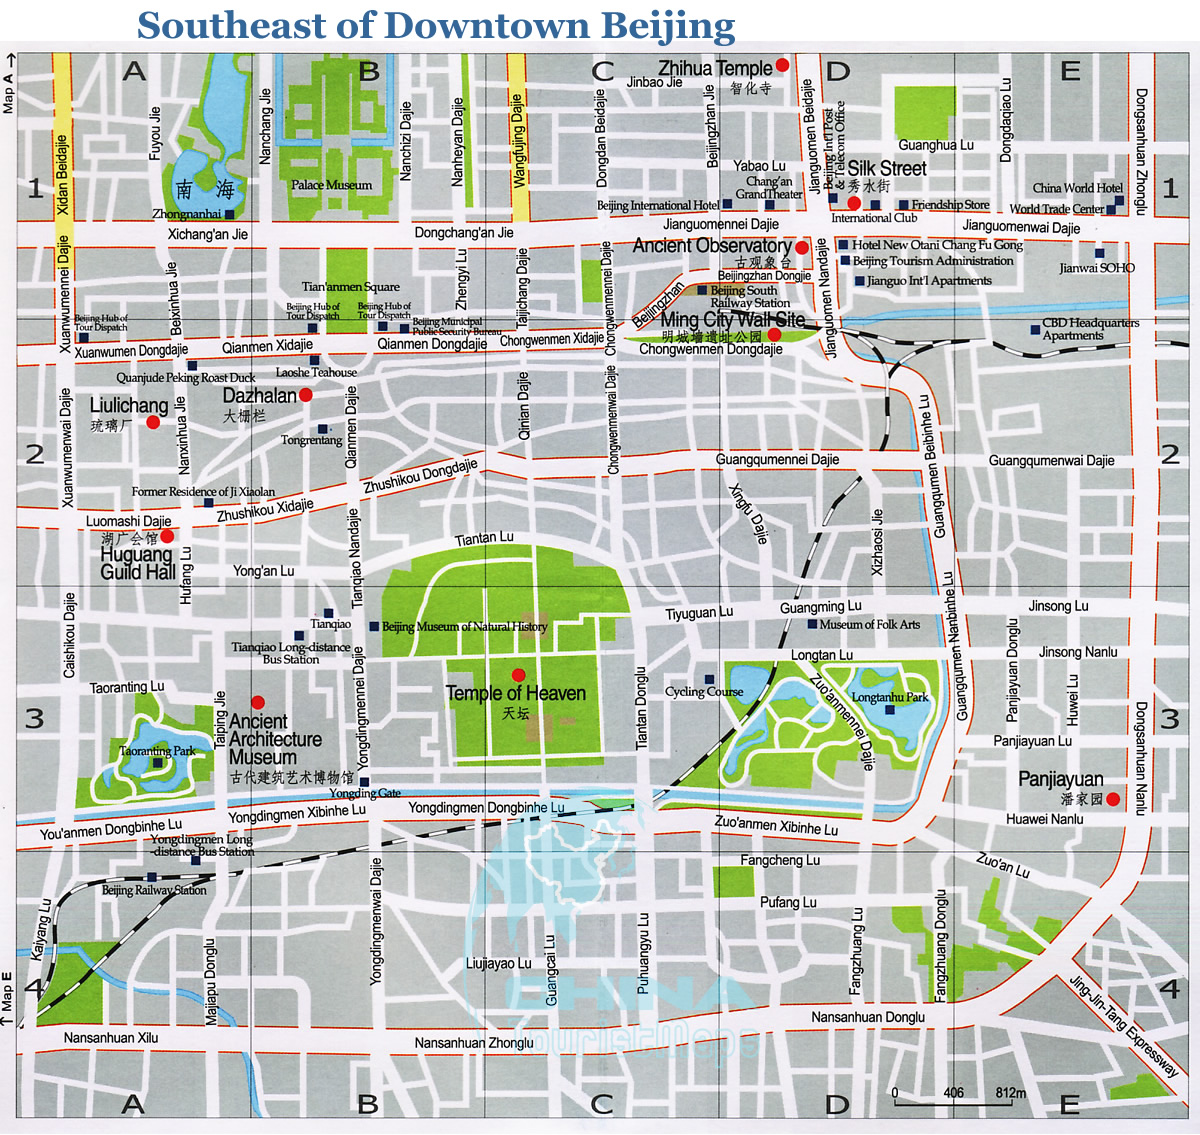 Map of Beijing the Southeast Part of Downtown Beijing China – Beijing Travel Map